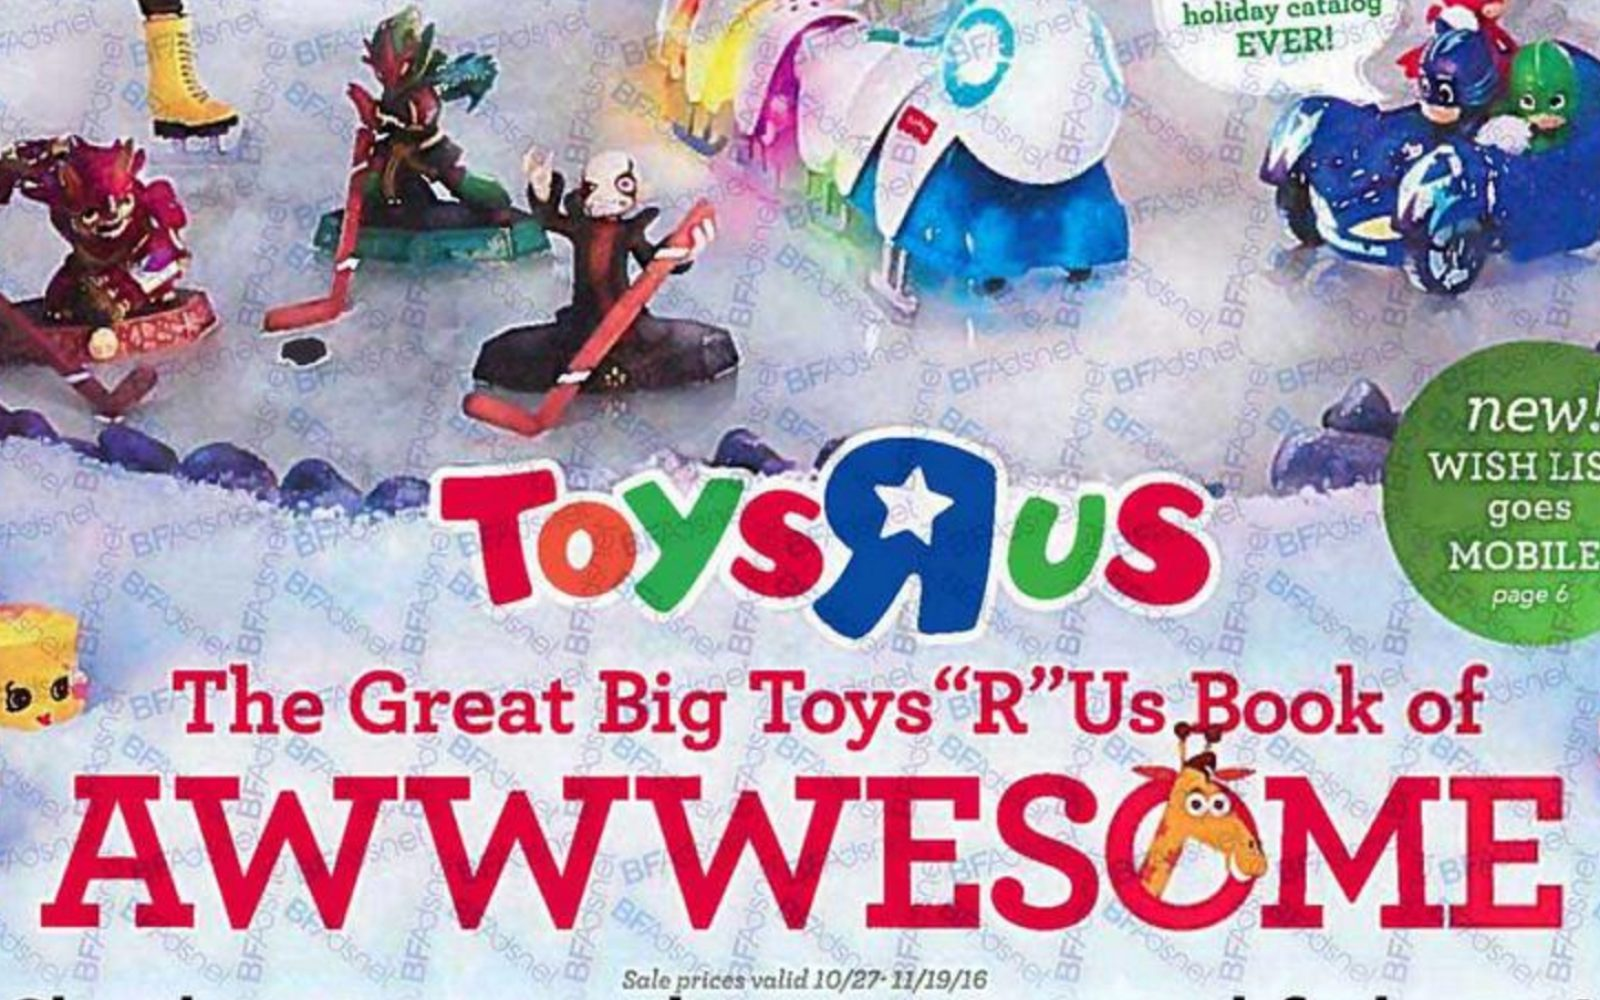 the toys r us great big book of awesome leaked with deals on star wars lego drones much more